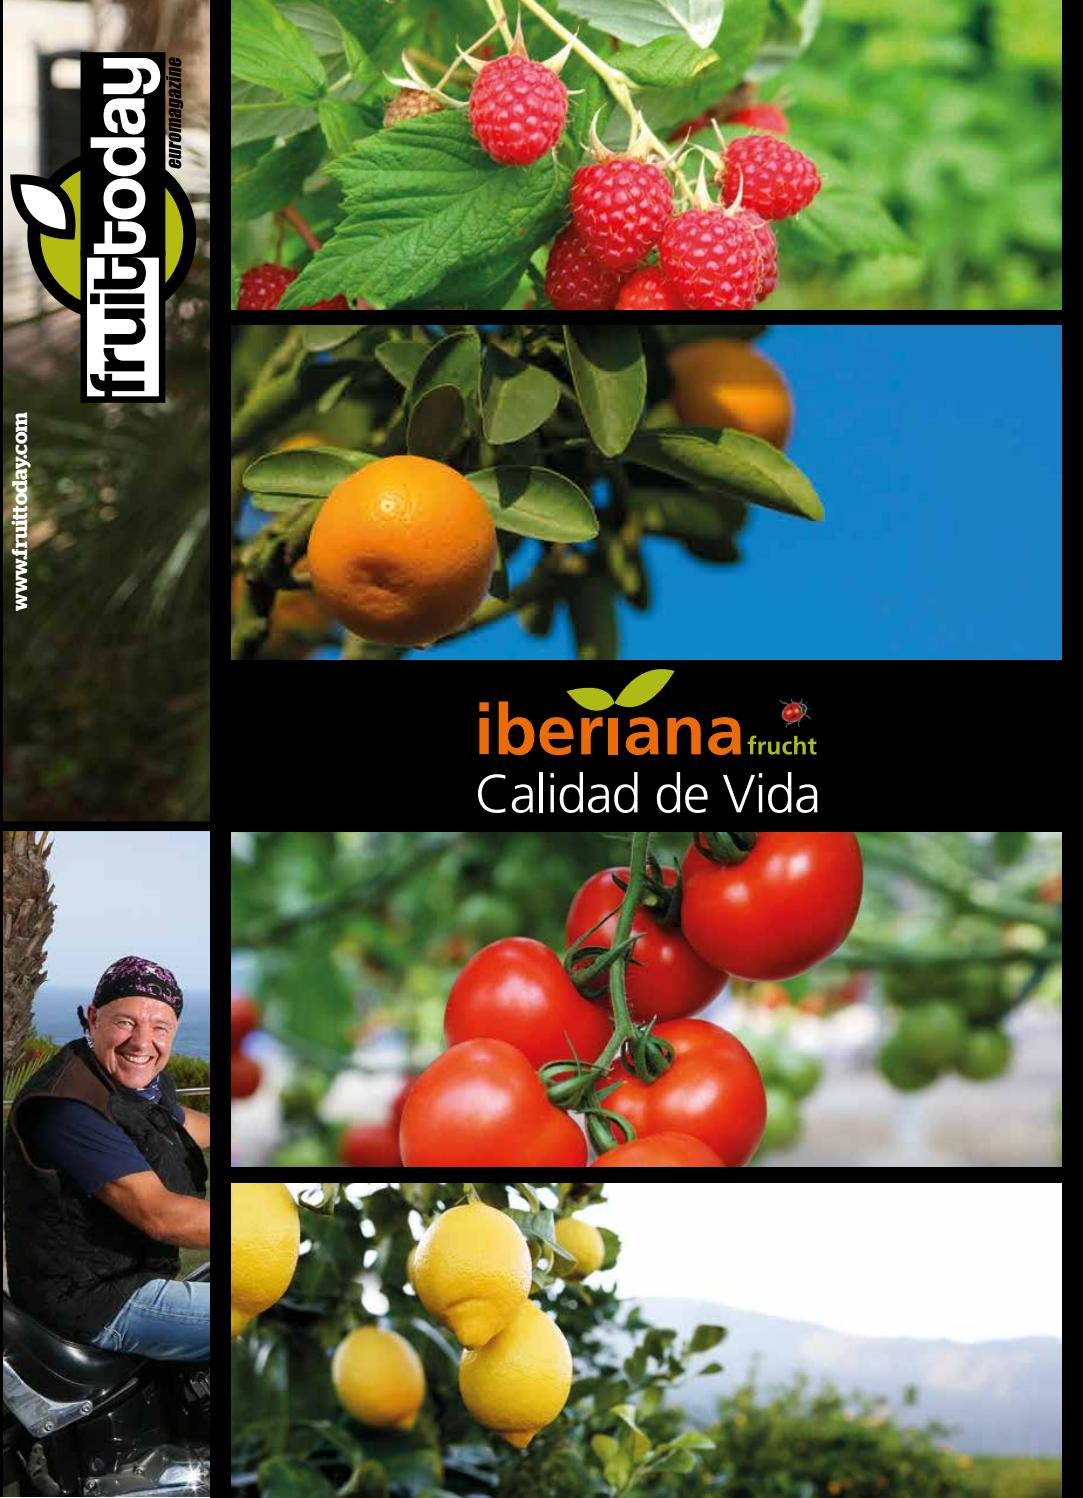 972b5d7f5c71 FRUIT TODAY euromagazine Ed. 64b by FRUIT TODAY euromagazine - issuu